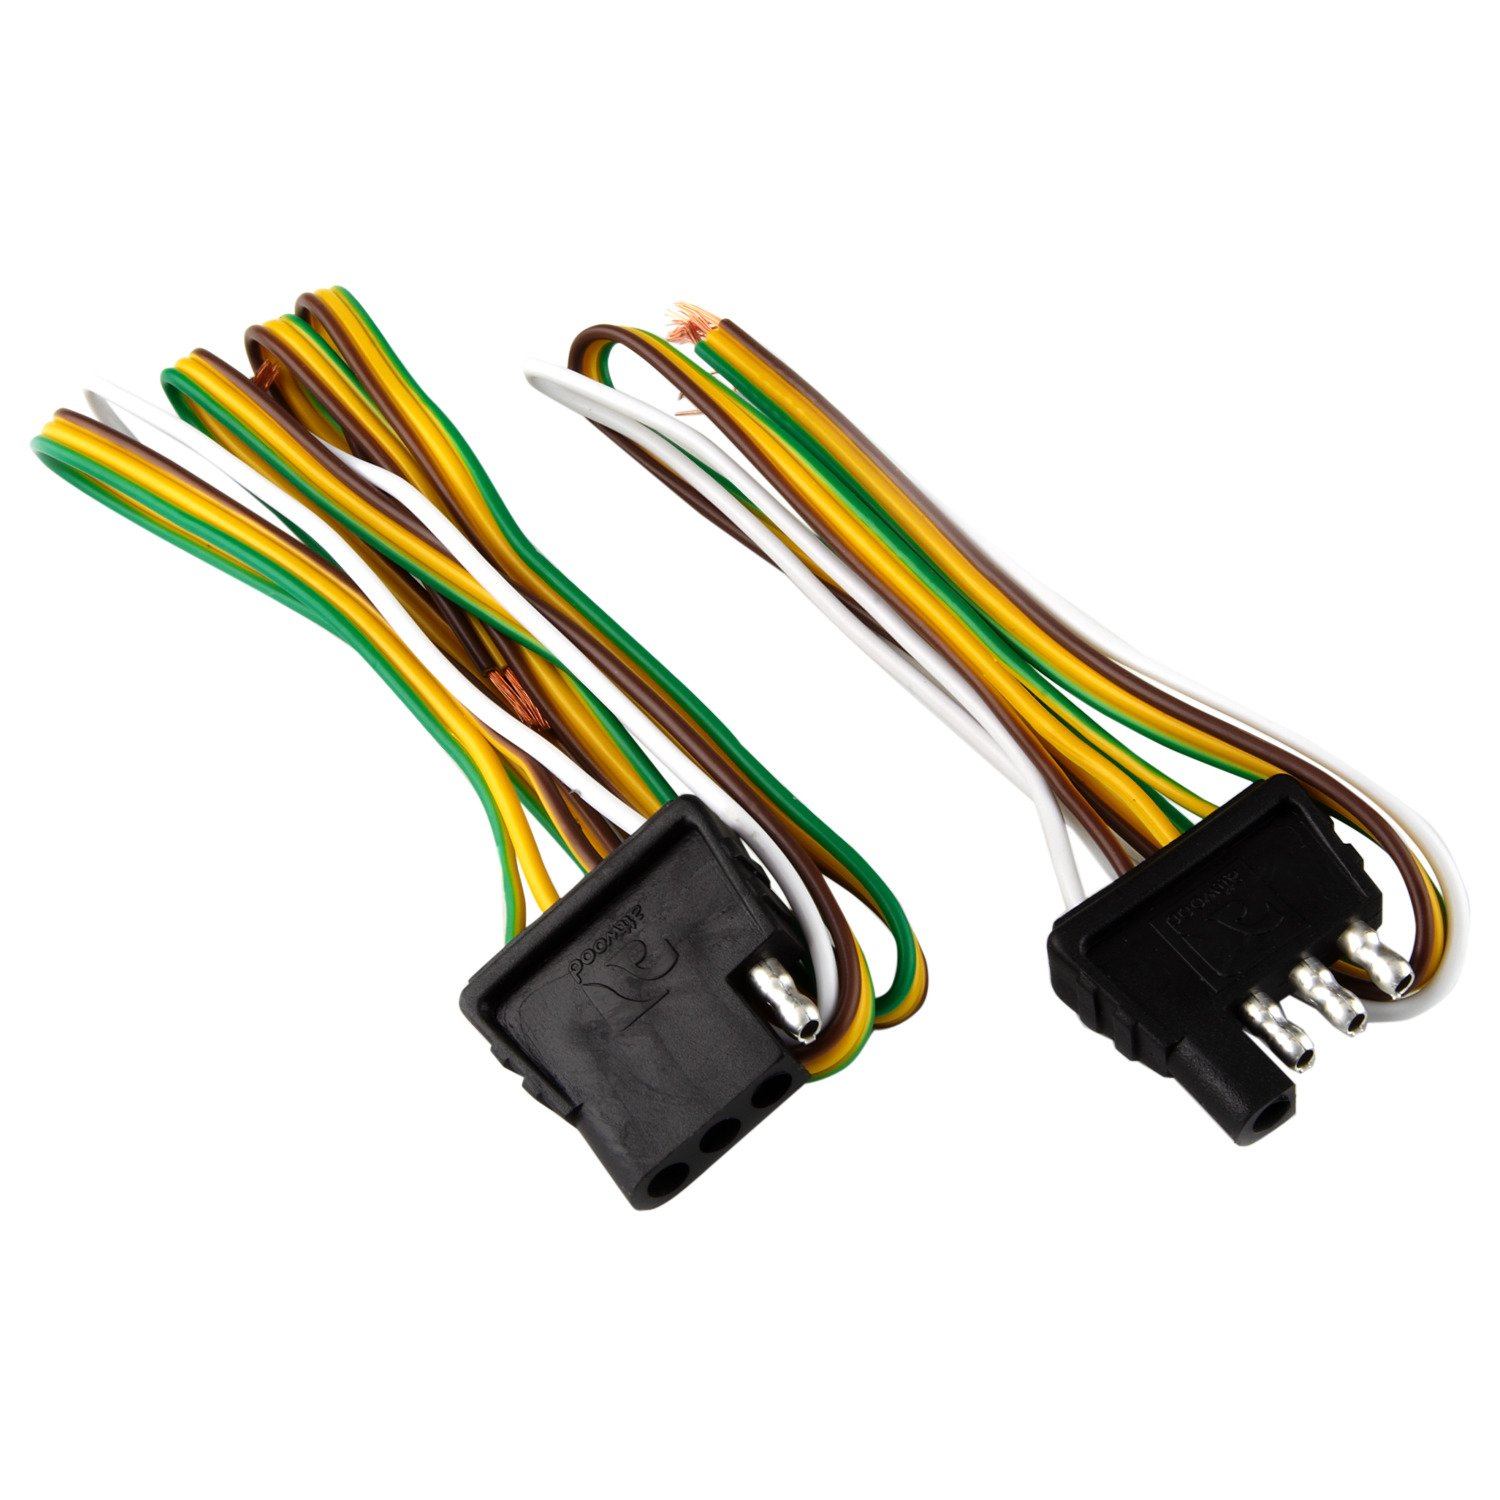 medium resolution of attwood 4 way flat wiring harness kit for vehicles and trailers wire harness tubing 4 wire wiring harness